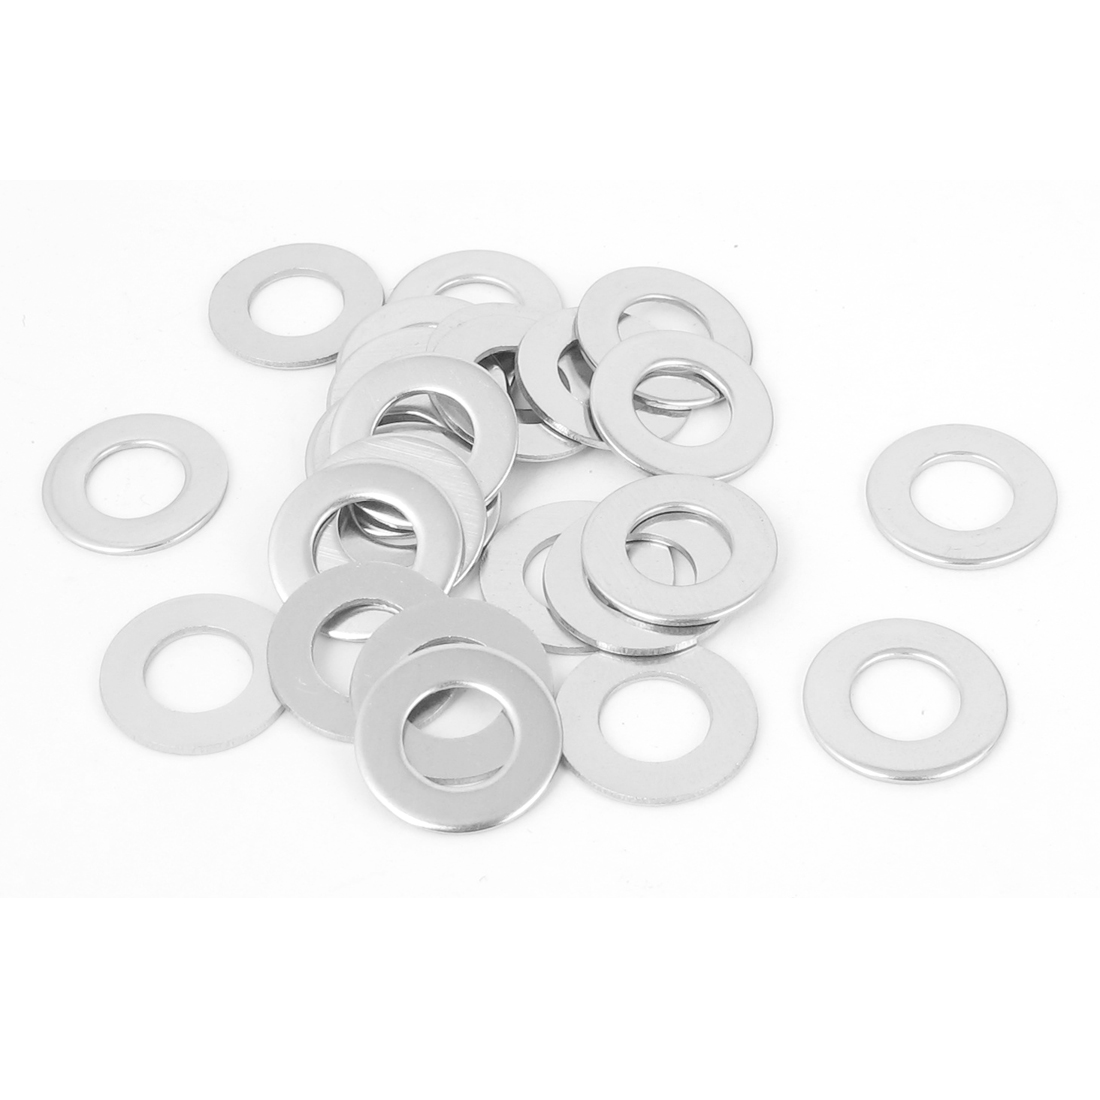 25pcs M8 x 16mm x 1mm Stainless Steel Flat Washer Plain Spacer Gasket Silver Tone